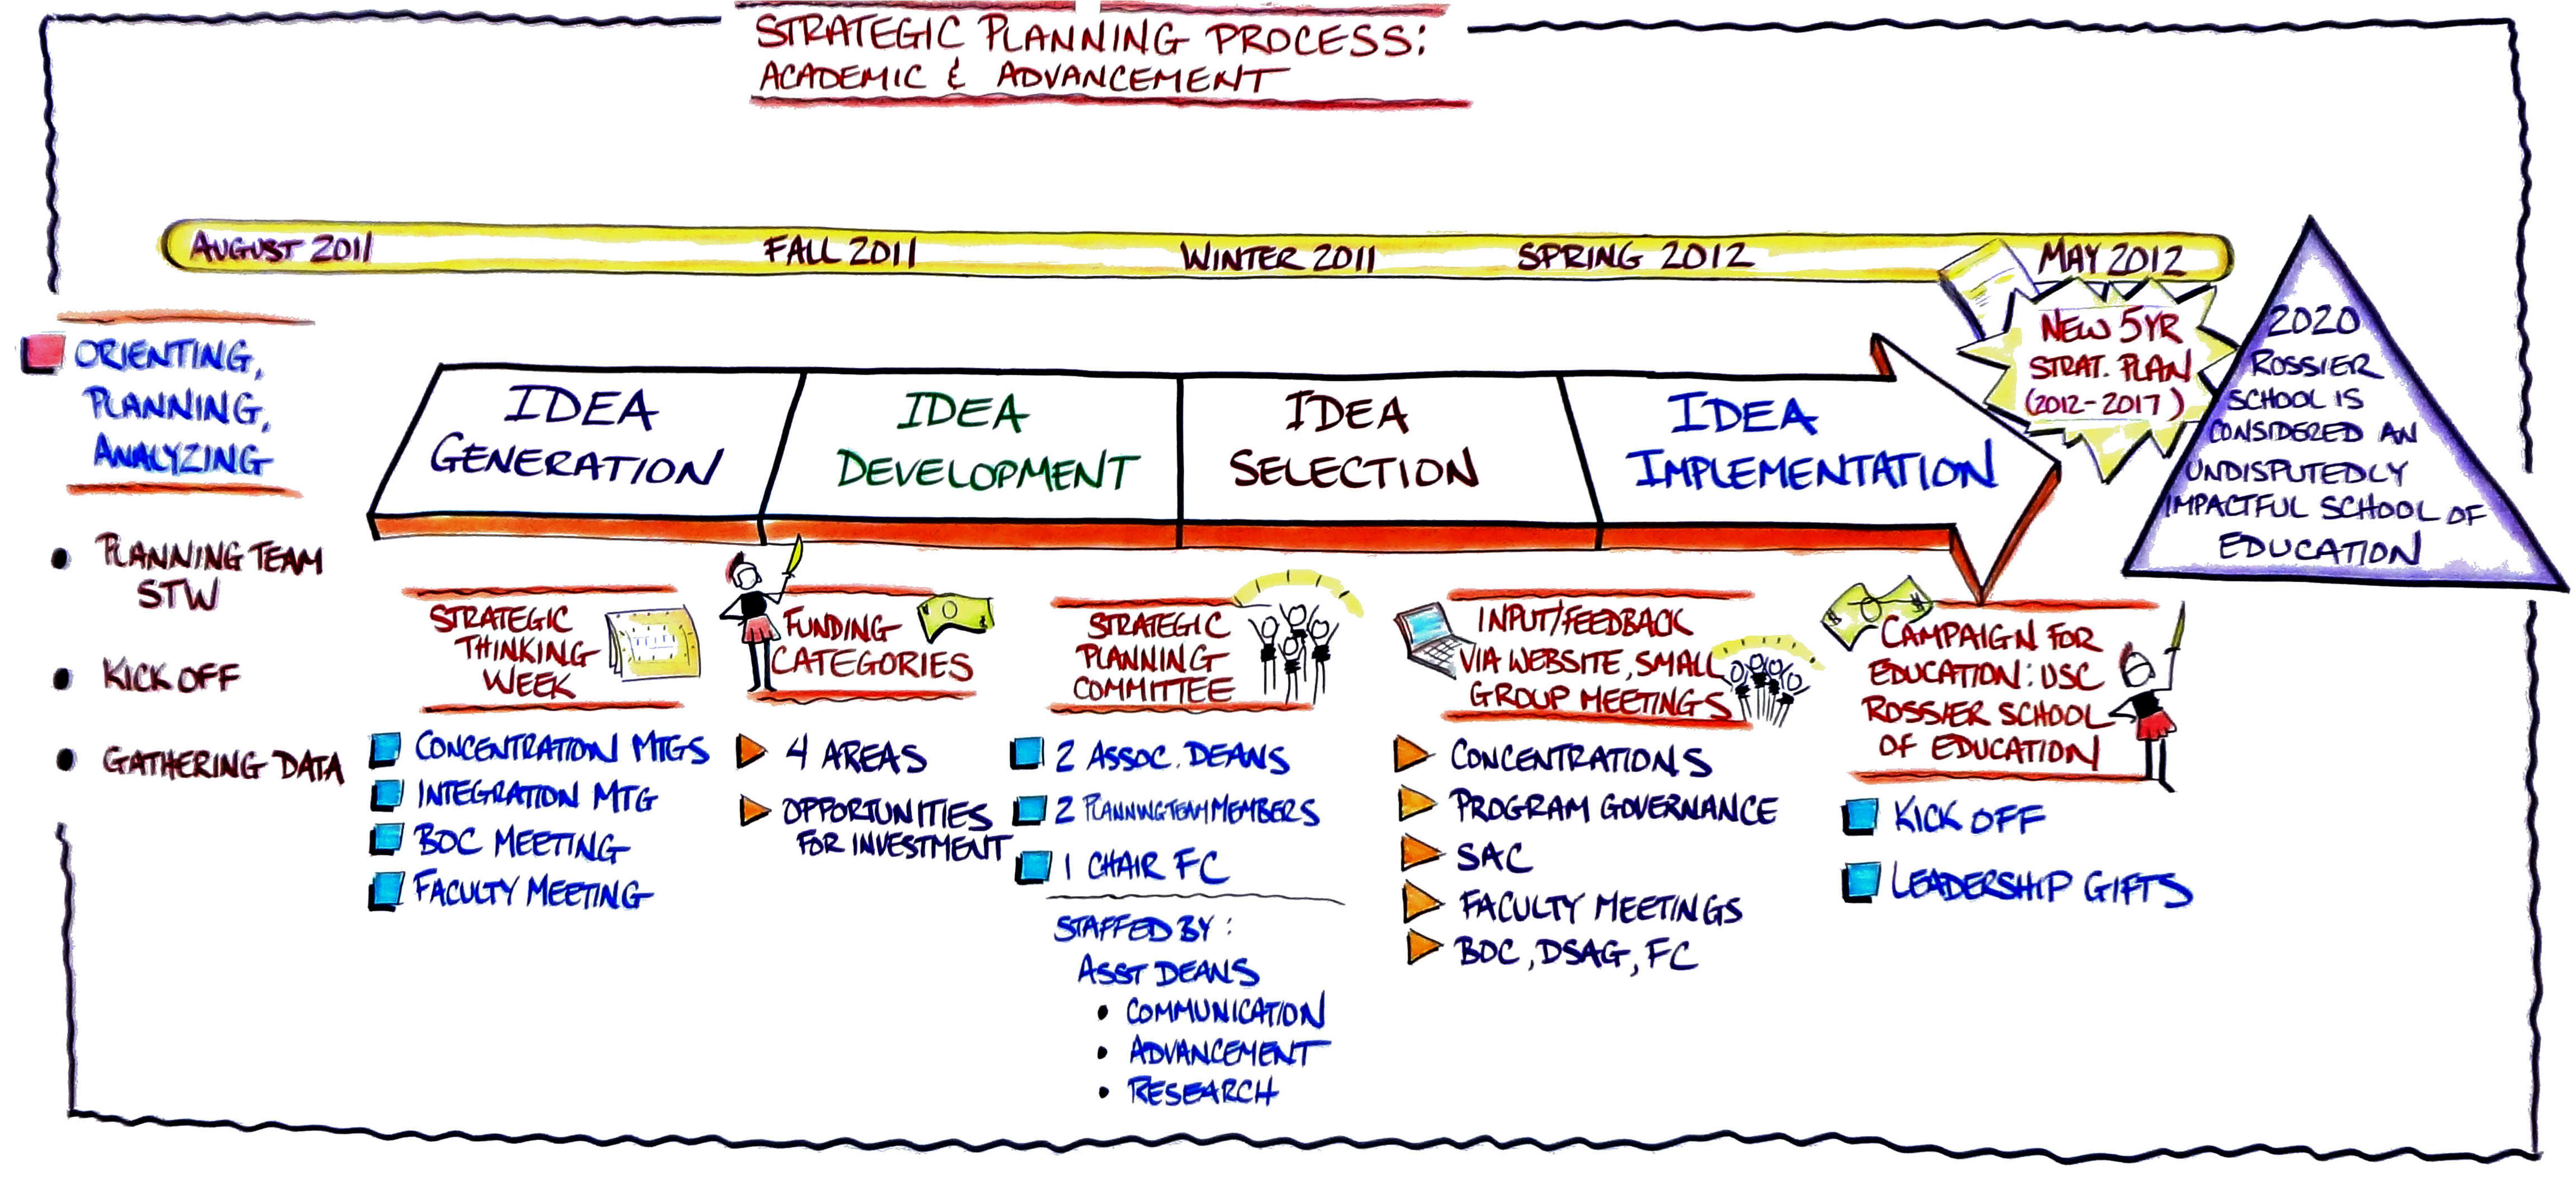 Wallchart_Strategic-Planning-Process_Poor